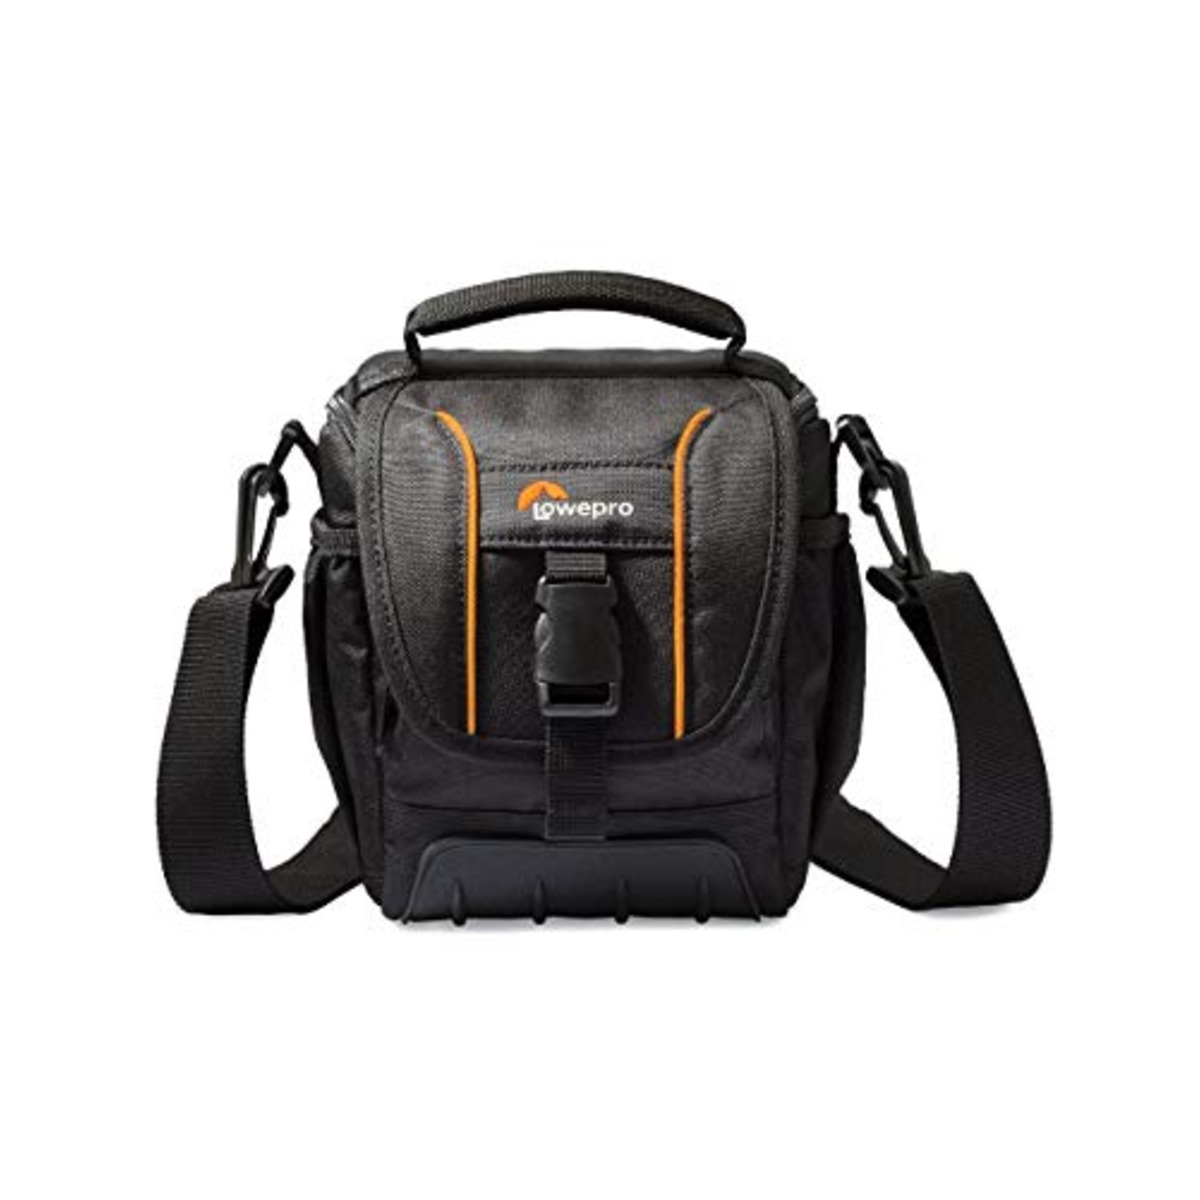 0056035368646-lowepro-adventura-sh-120-ii-custodia-a-fondina-nero